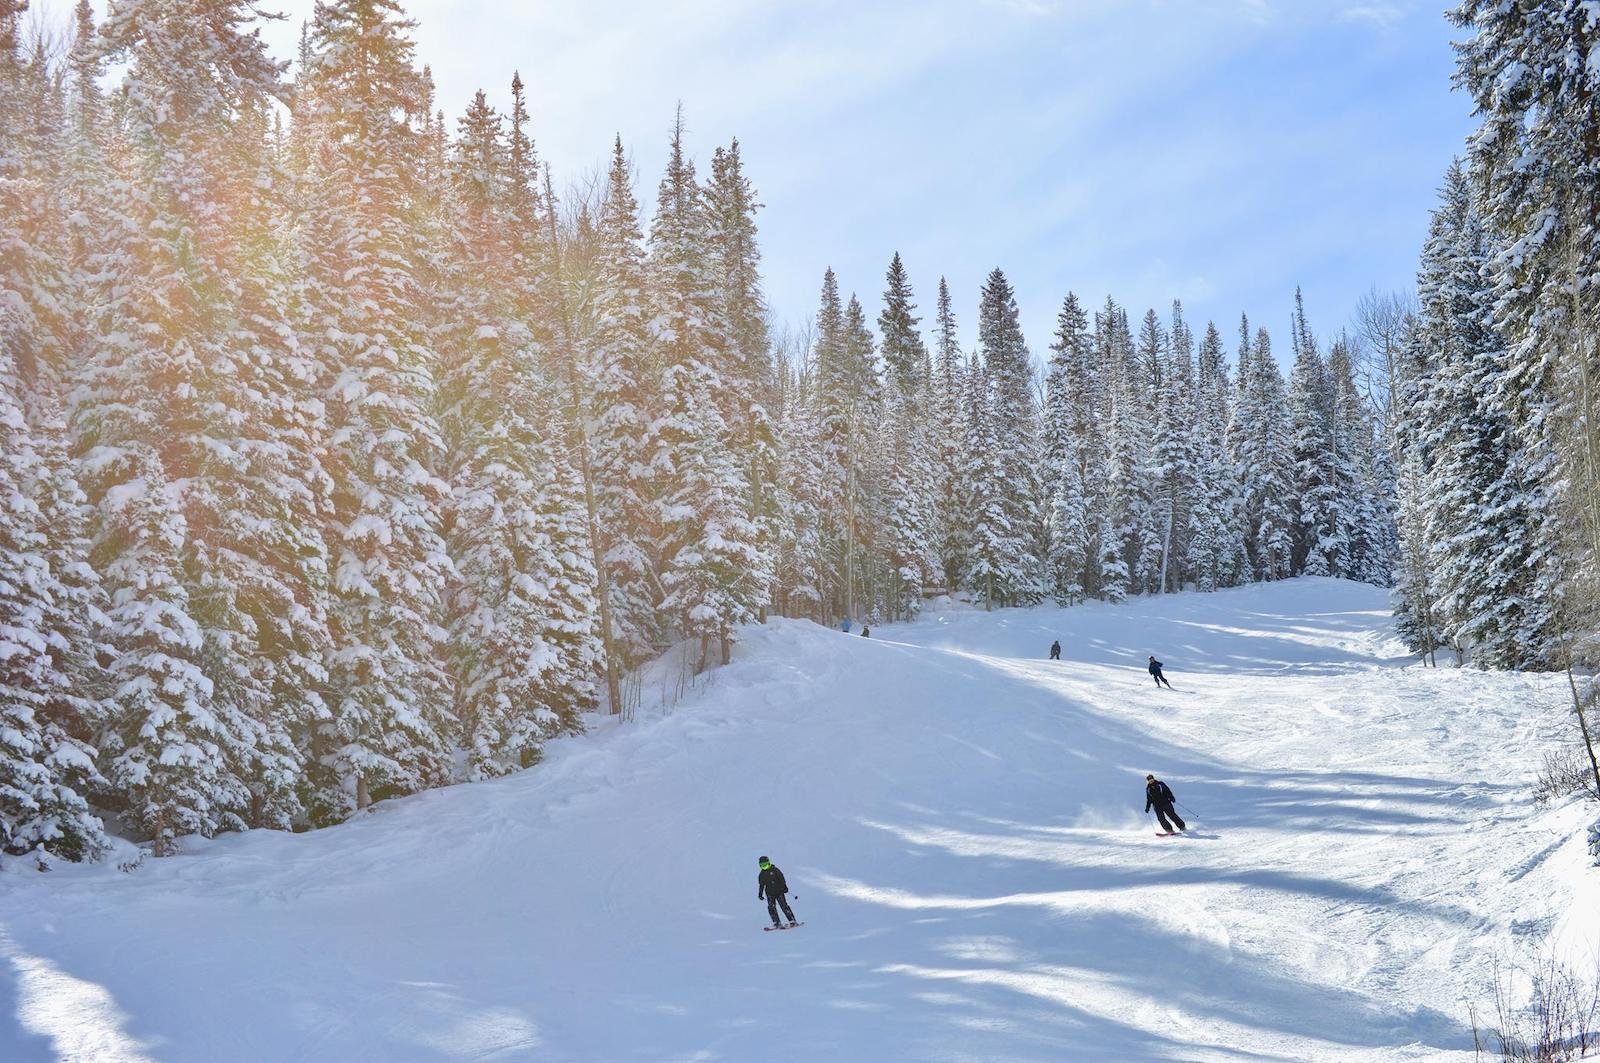 Image of the skiers on the slopes at Powderhorn Resort in Mesa, CO